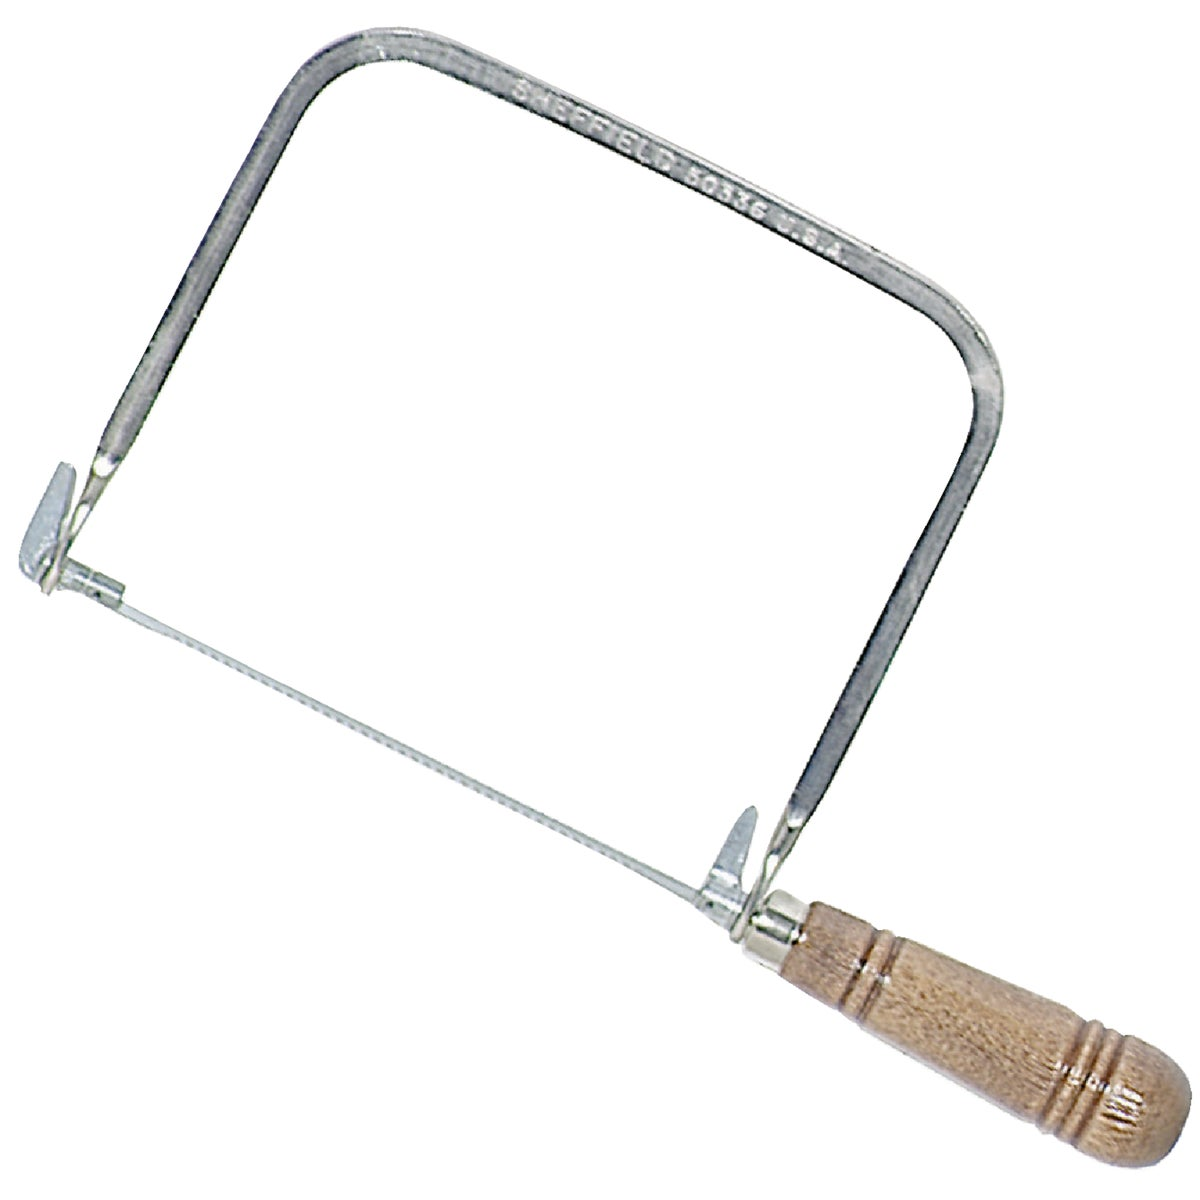 WOOD COPING SAW